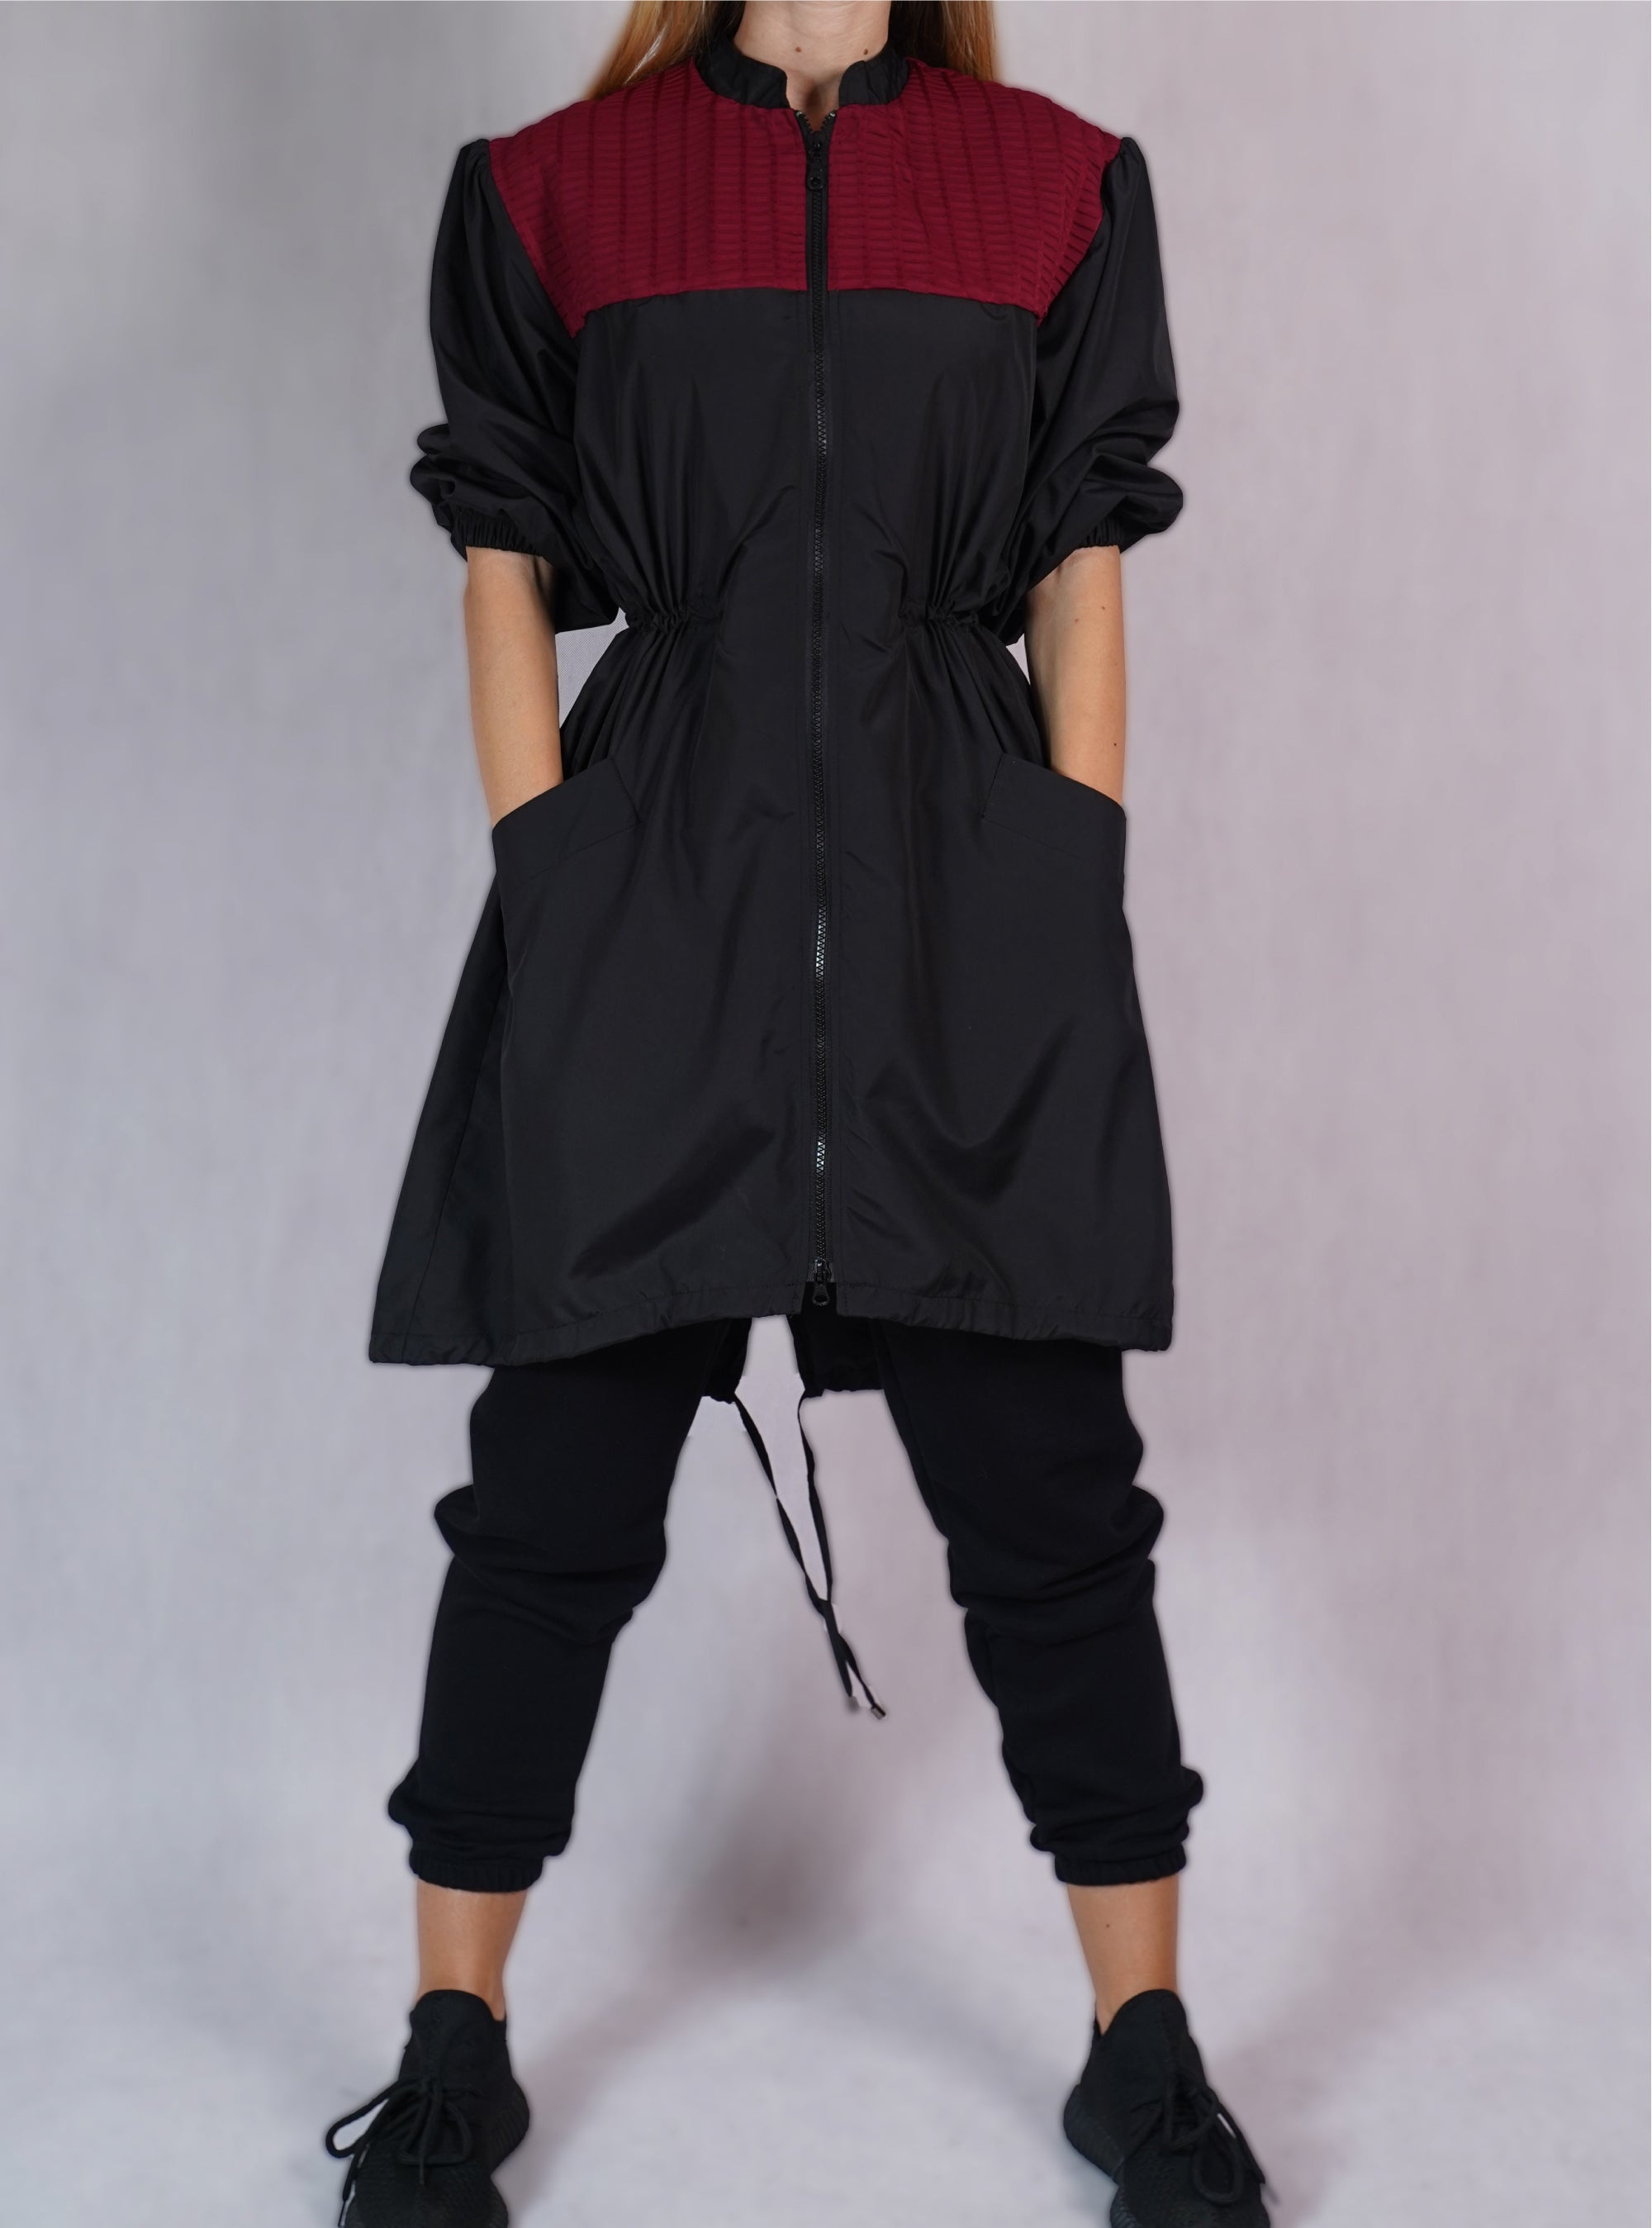 Windbreaker Trench Coat in Black/Bordeaux - C173001